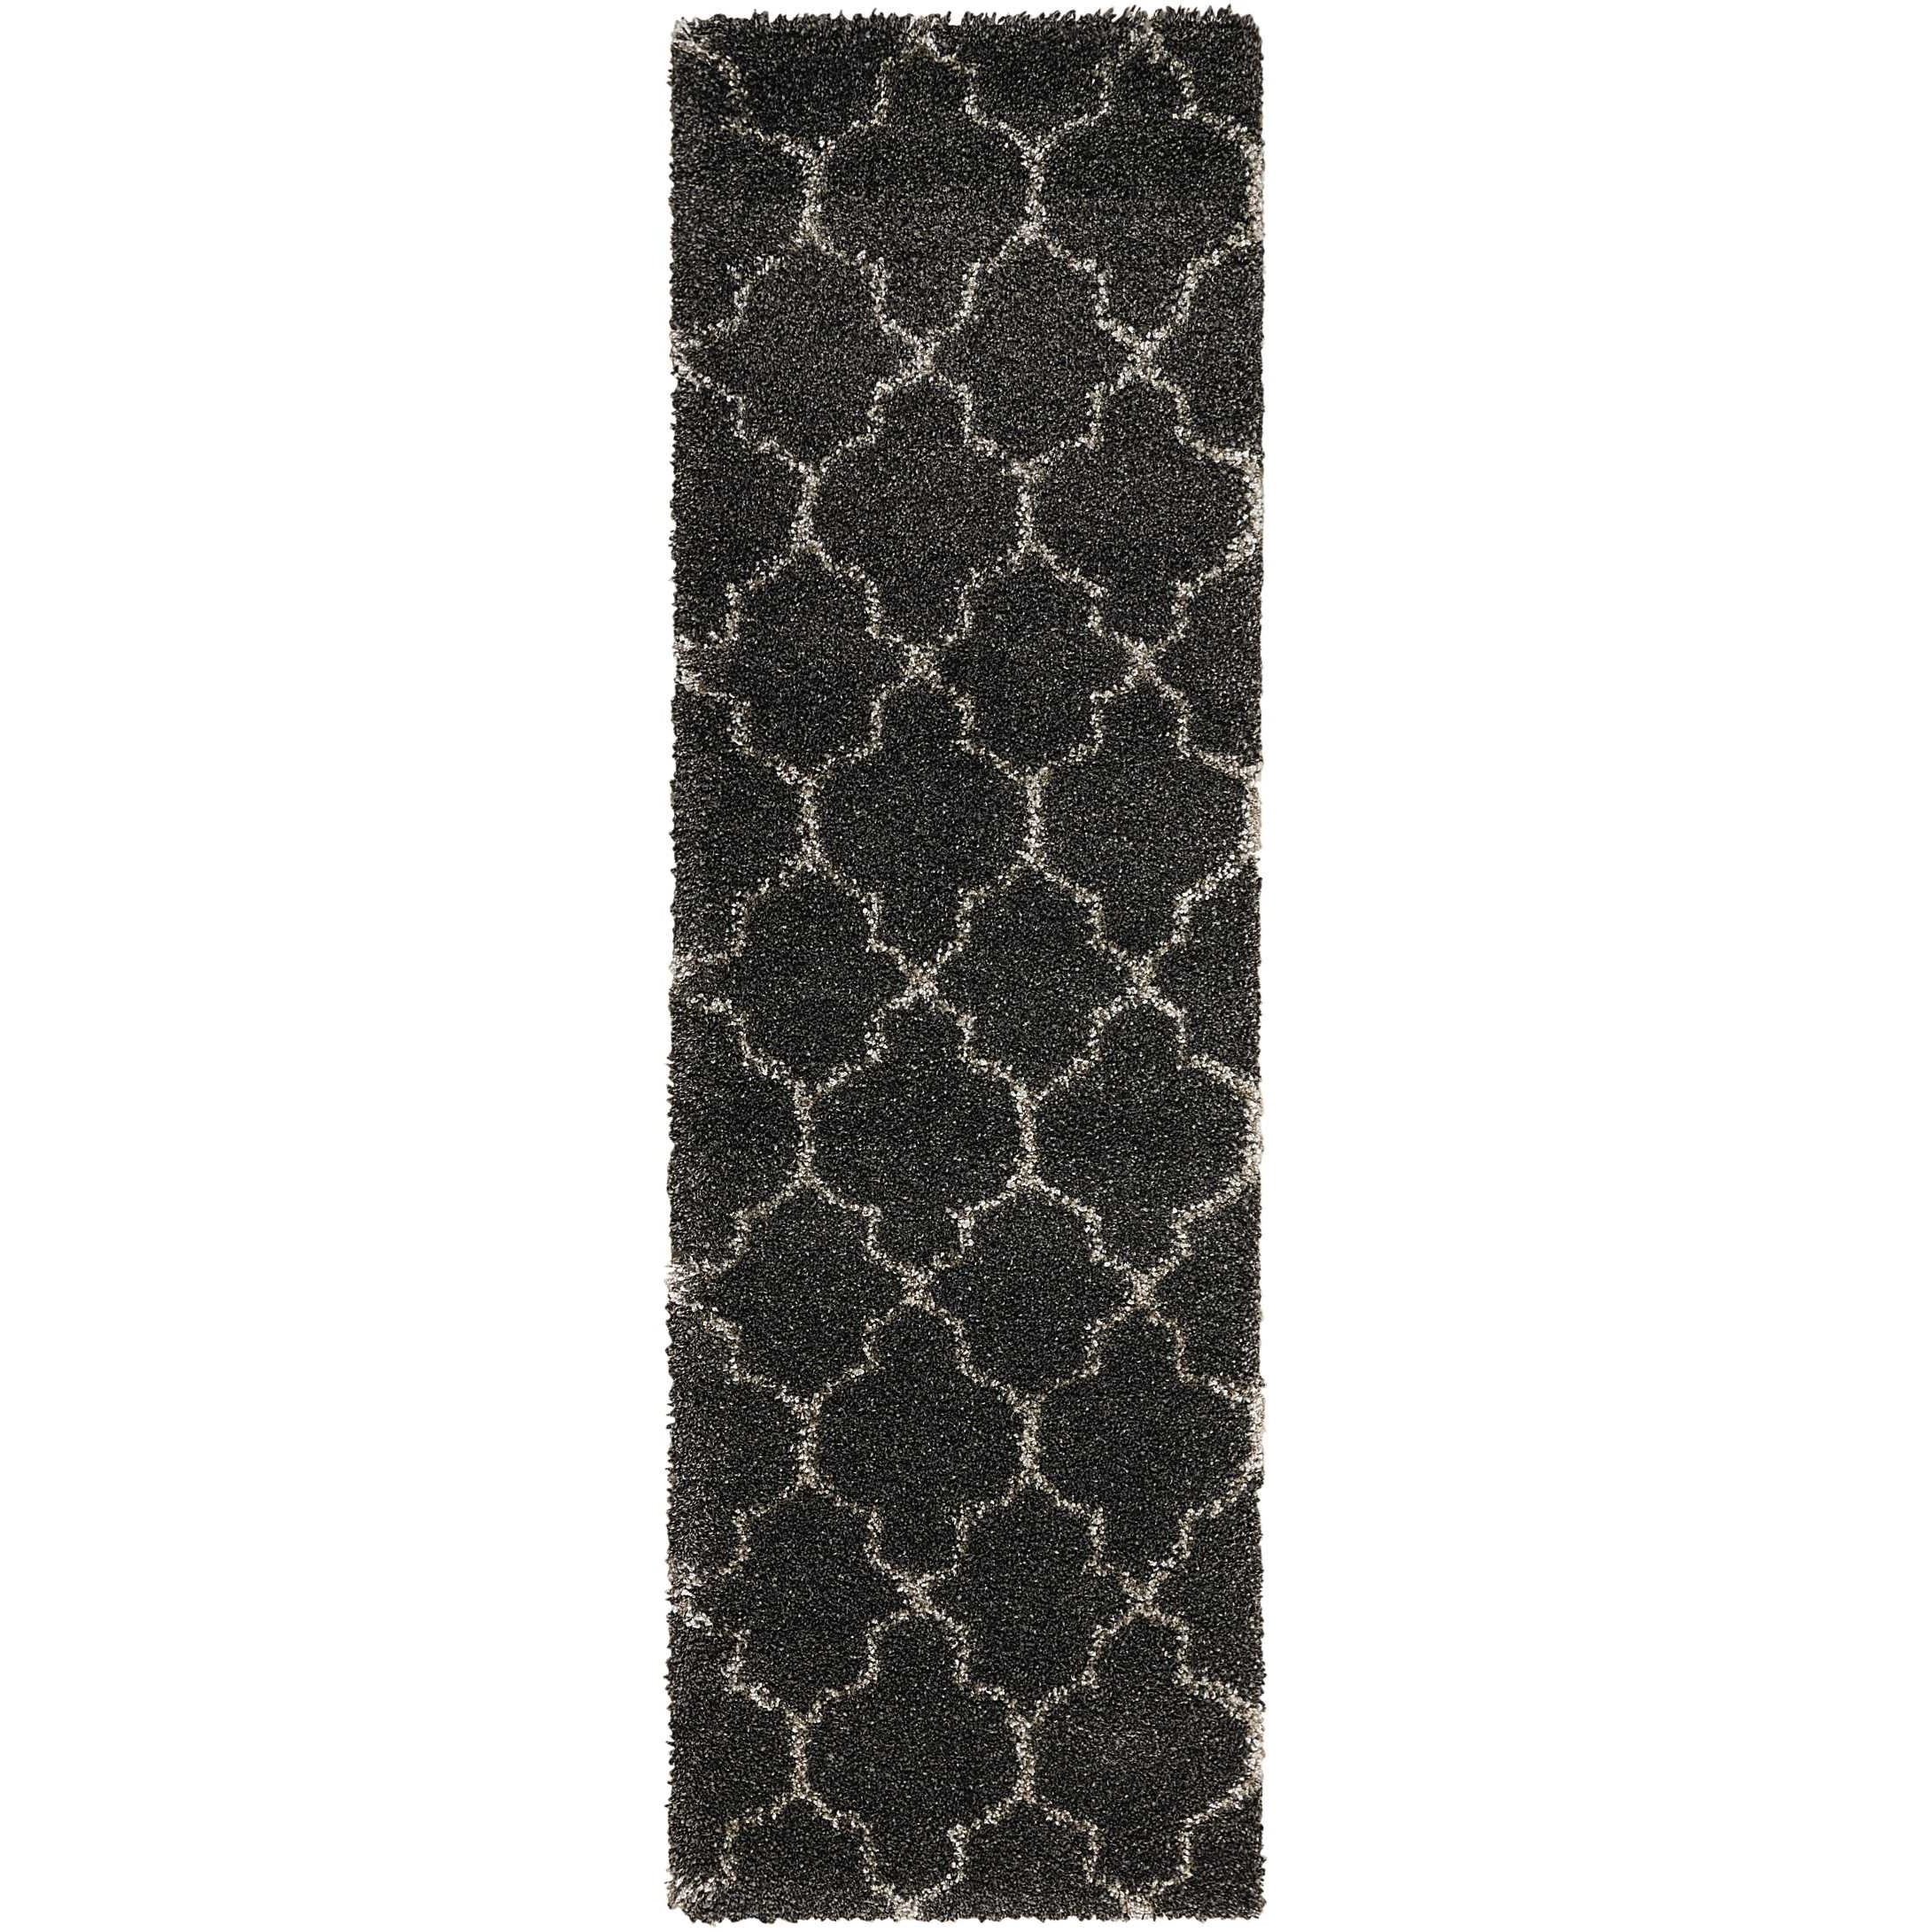 """Amore 2'2"""" x 7'6"""" Charcoal Runner Rug by Nourison at Sprintz Furniture"""